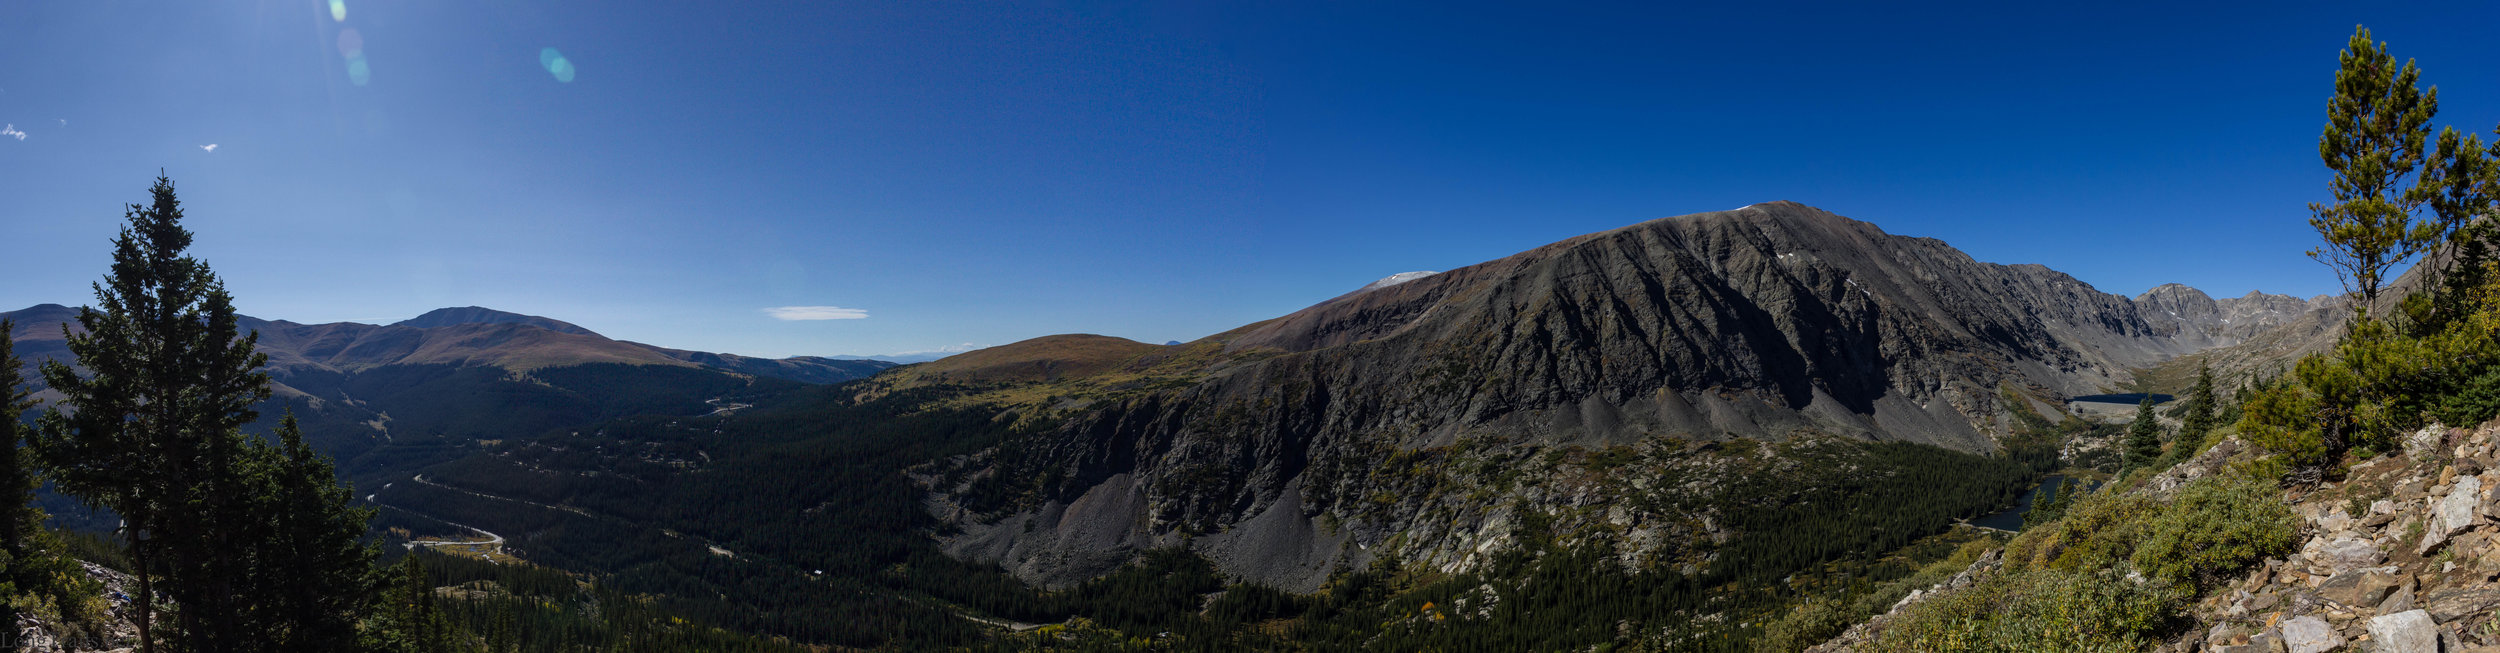 Lincoln Group - Quandary 9-14 - 9-15 192-Pano.jpg